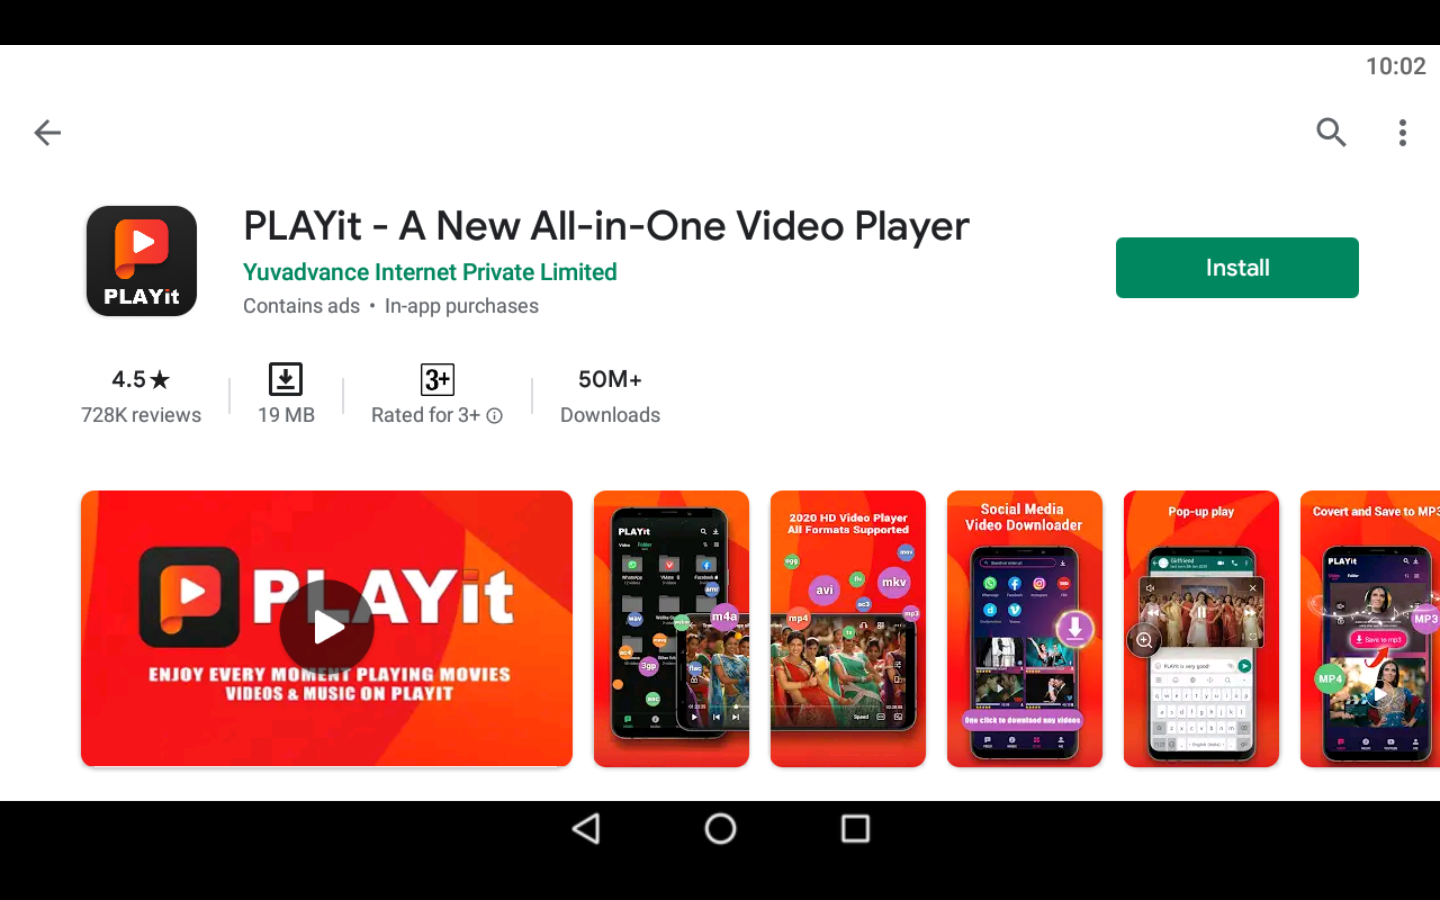 Playit App on PC